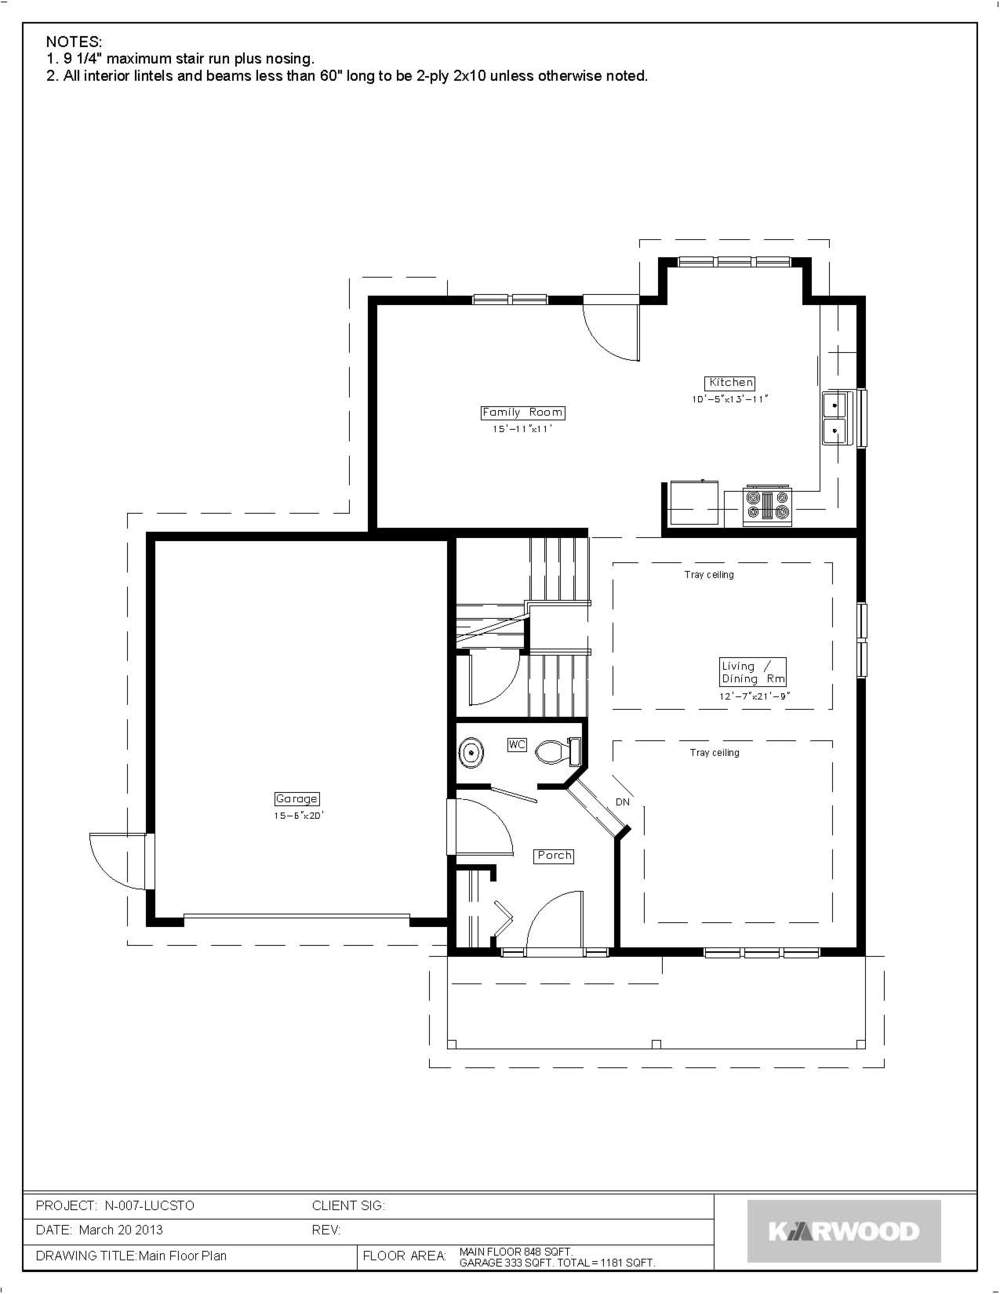 N-007-LUCSTO (listing plans)_Page_2.jpg